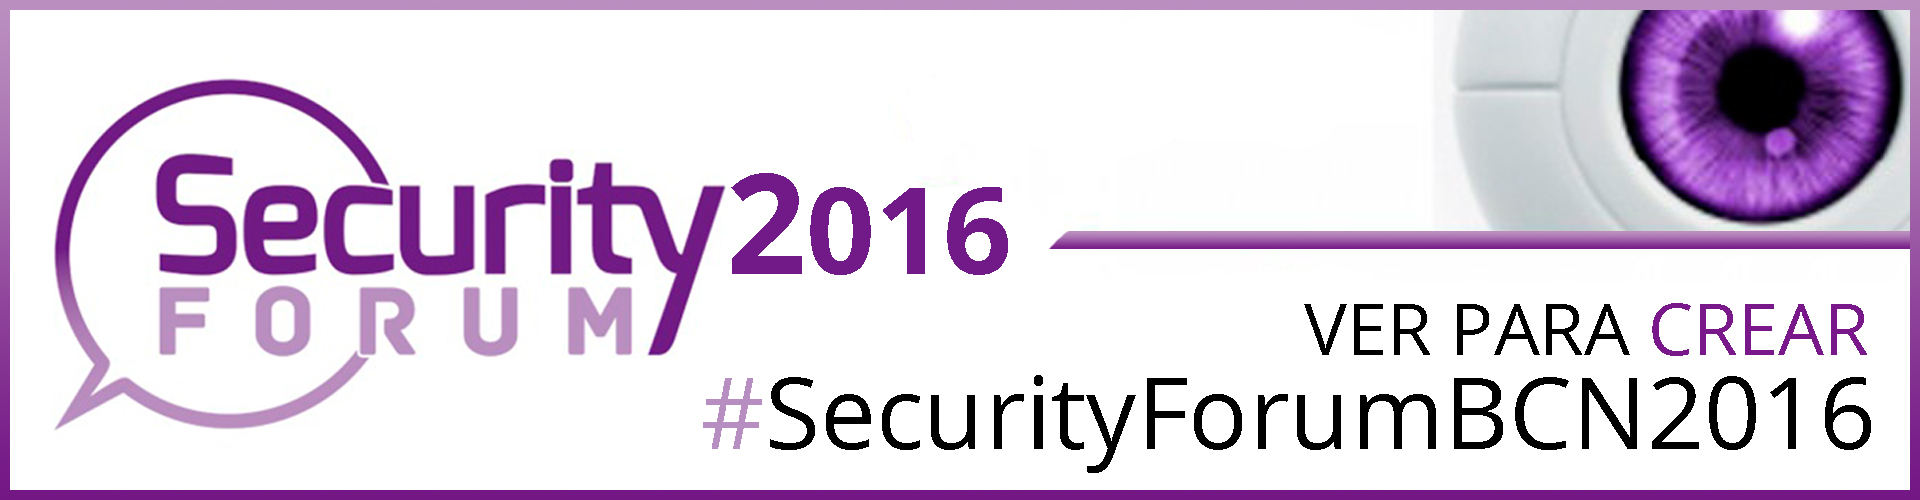 SecurityForumBCN2016